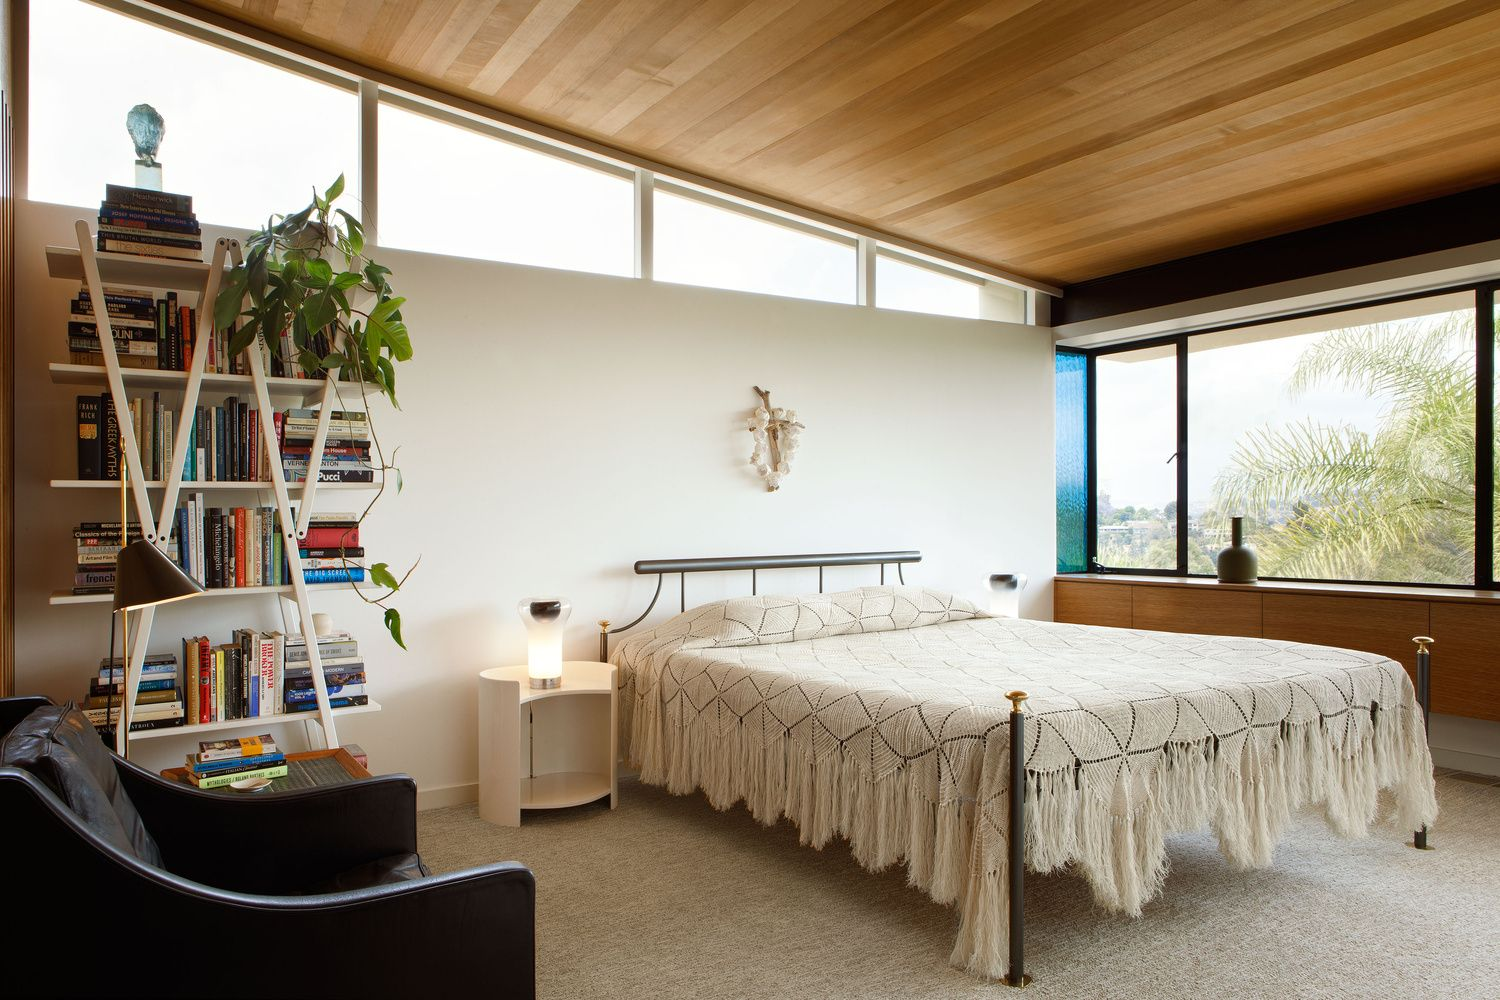 HILL HOUSE V - The Archers | Bedroom | Pinterest | House, Mid ...